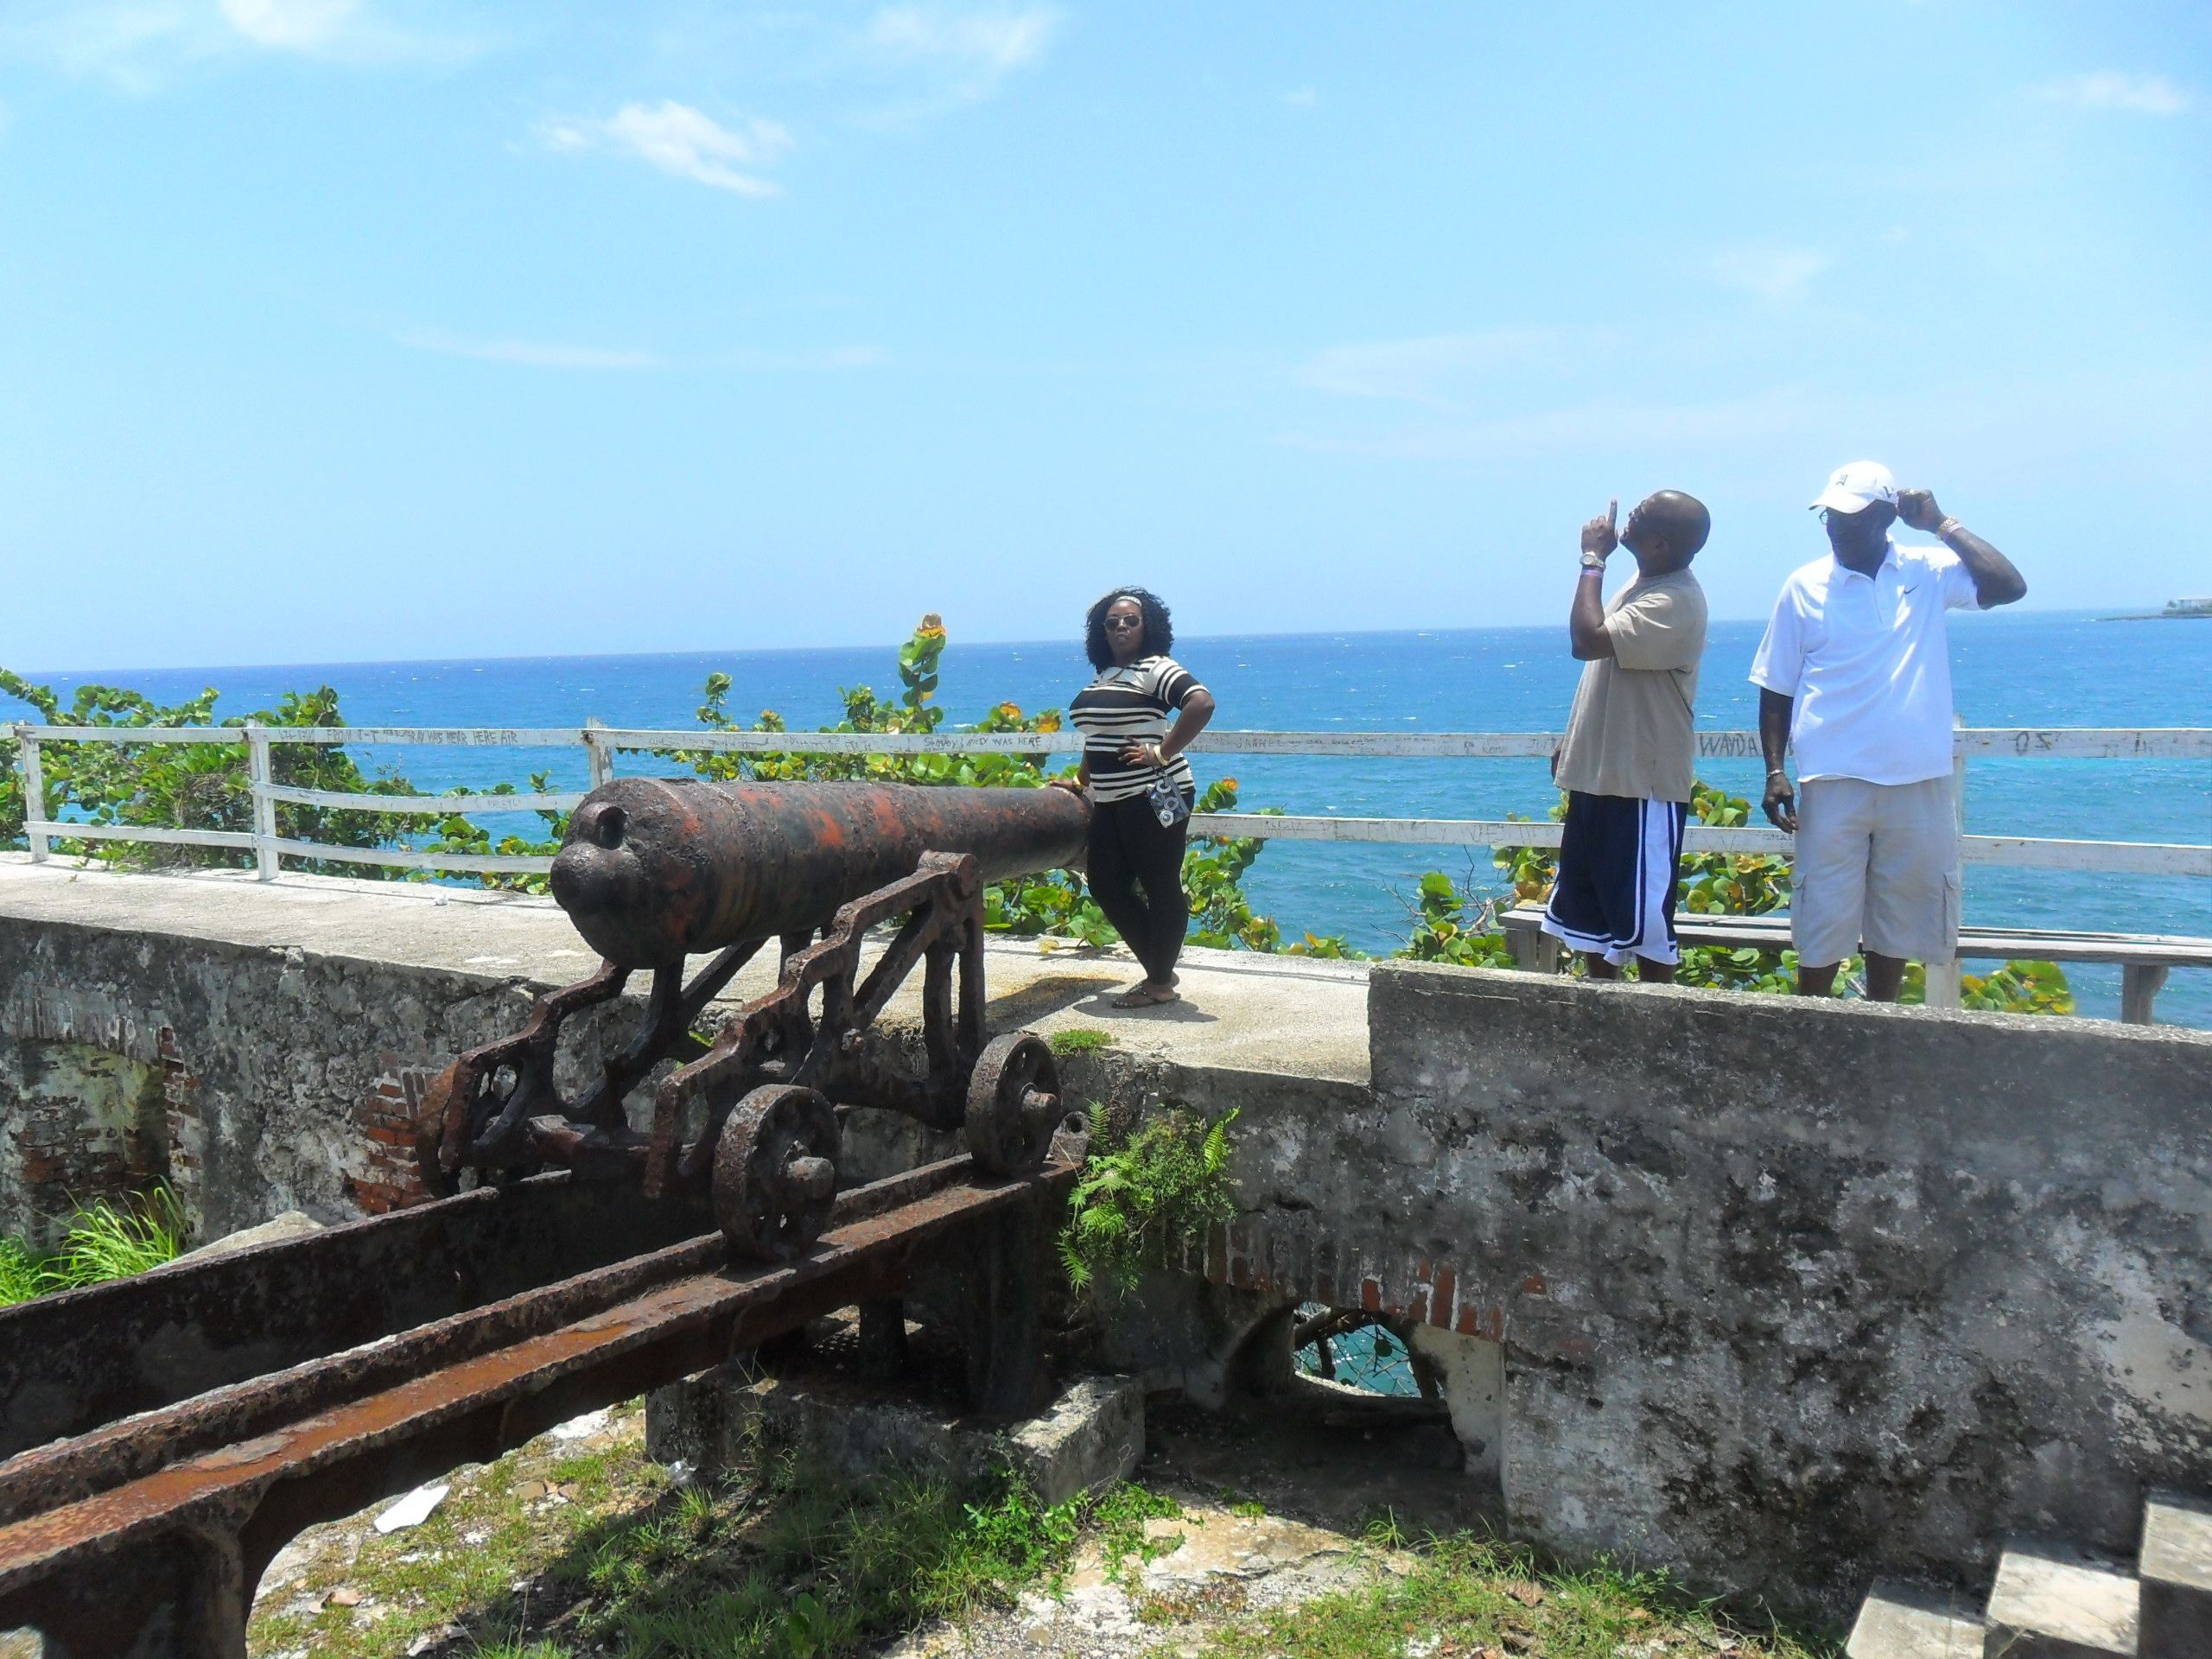 Me in Jamaica at the Fort.